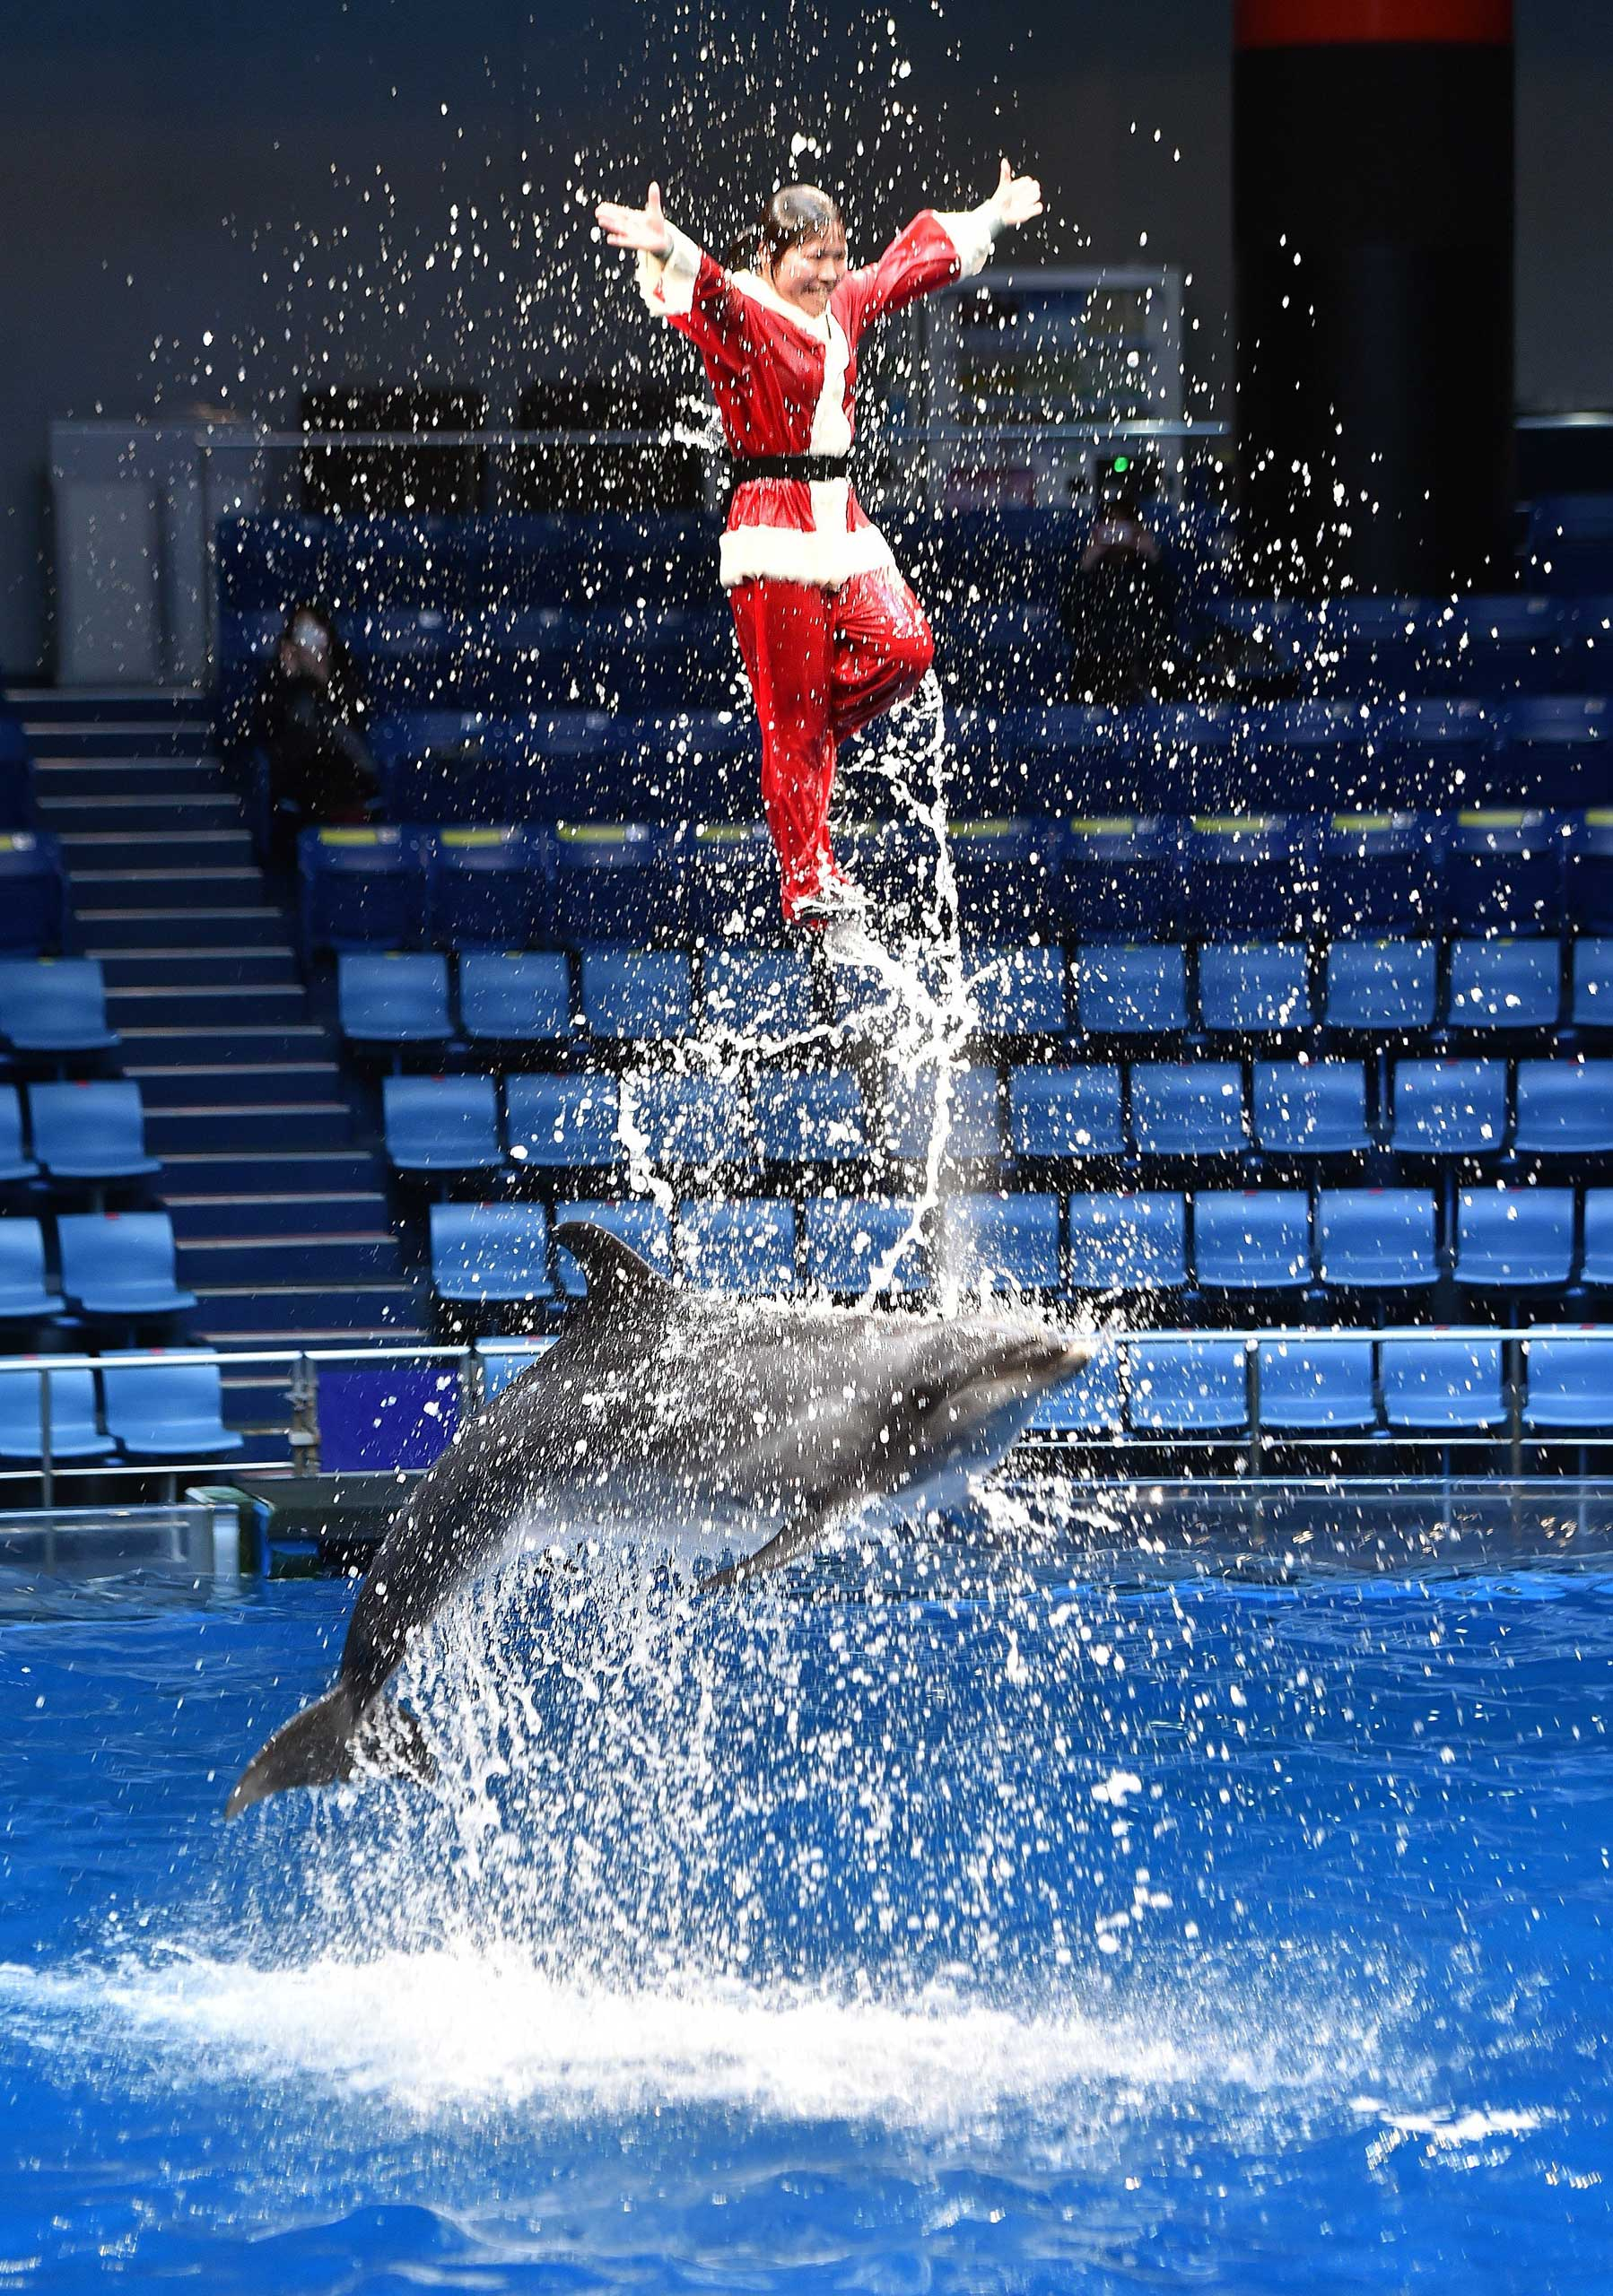 A trainer dressed as Santa Claus performs with a bottle-nose dolphin during a show at the Aqua Stadium aquarium in Tokyo on Dec. 22, 2014.